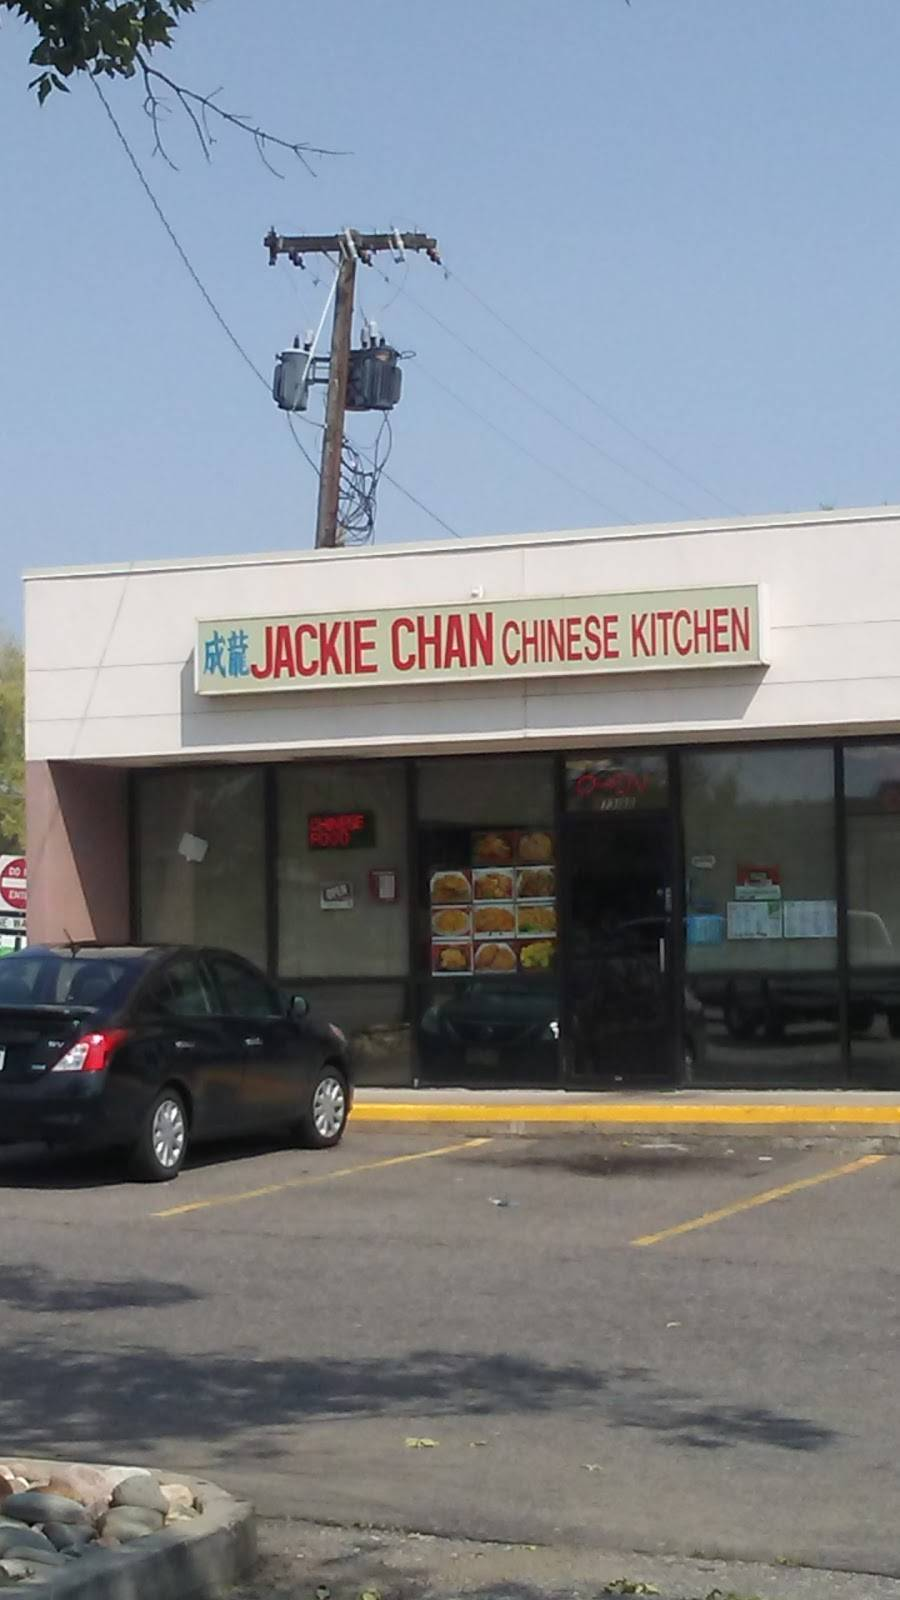 Jackie Chan Chinese Kitchen - meal delivery  | Photo 6 of 9 | Address: 7318 N Federal Blvd, Westminster, CO 80030, USA | Phone: (303) 427-6868